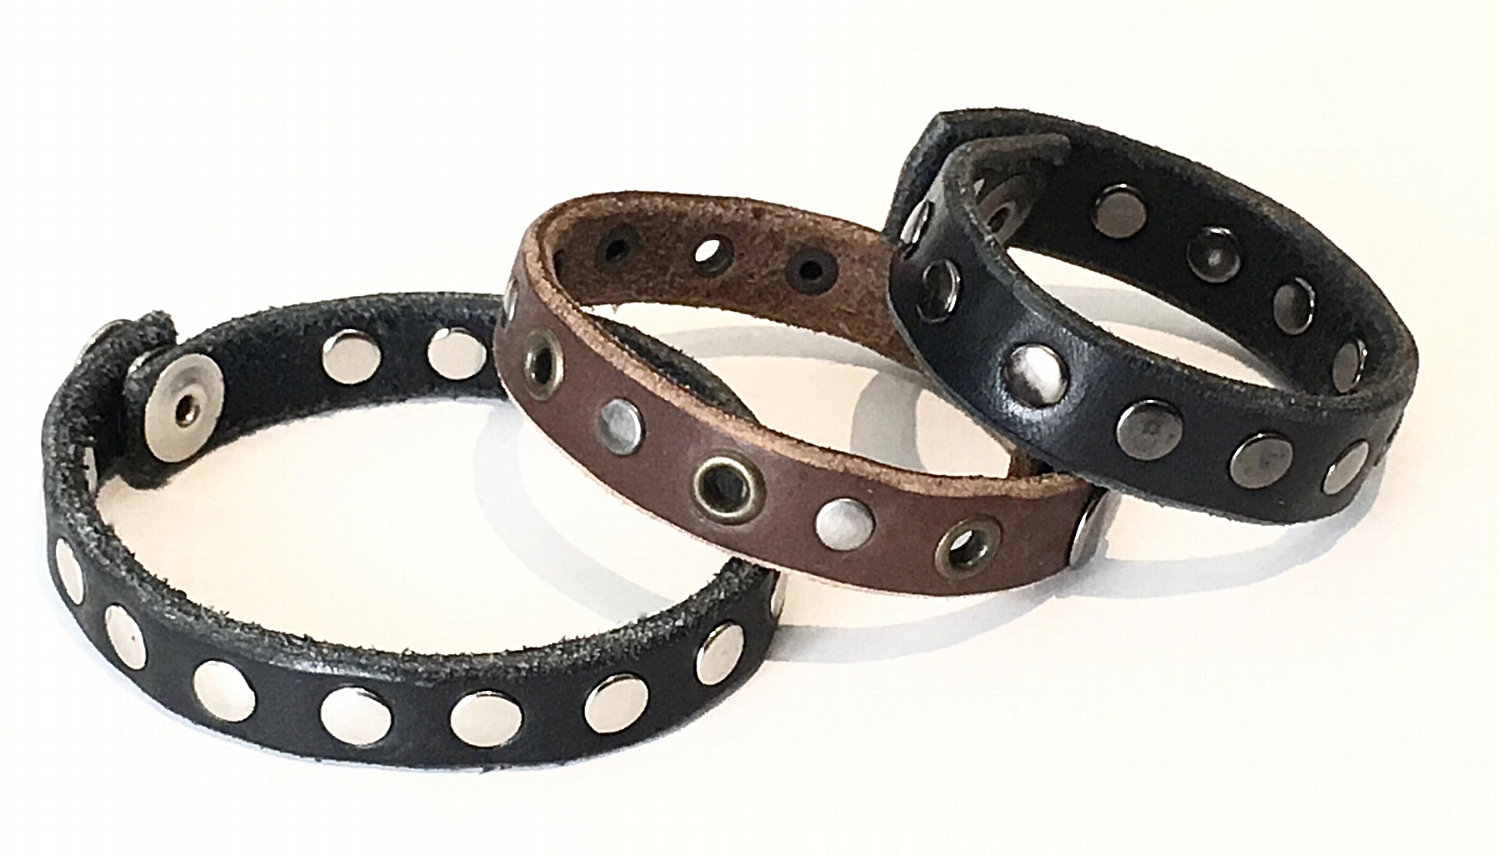 Leather Cuff 12 wide. Black or Brown leather with assorted metal detail. $32..jpg